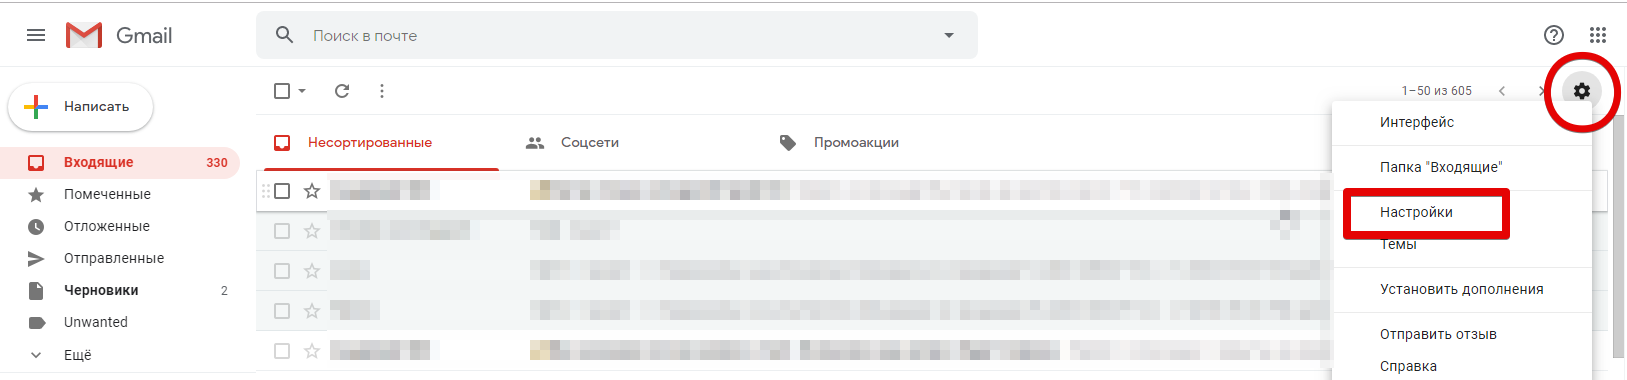 Входящие (330) - seo12051991@gmail.com - Gmail - Google Chrome 2019-09-05 13.39.27.png